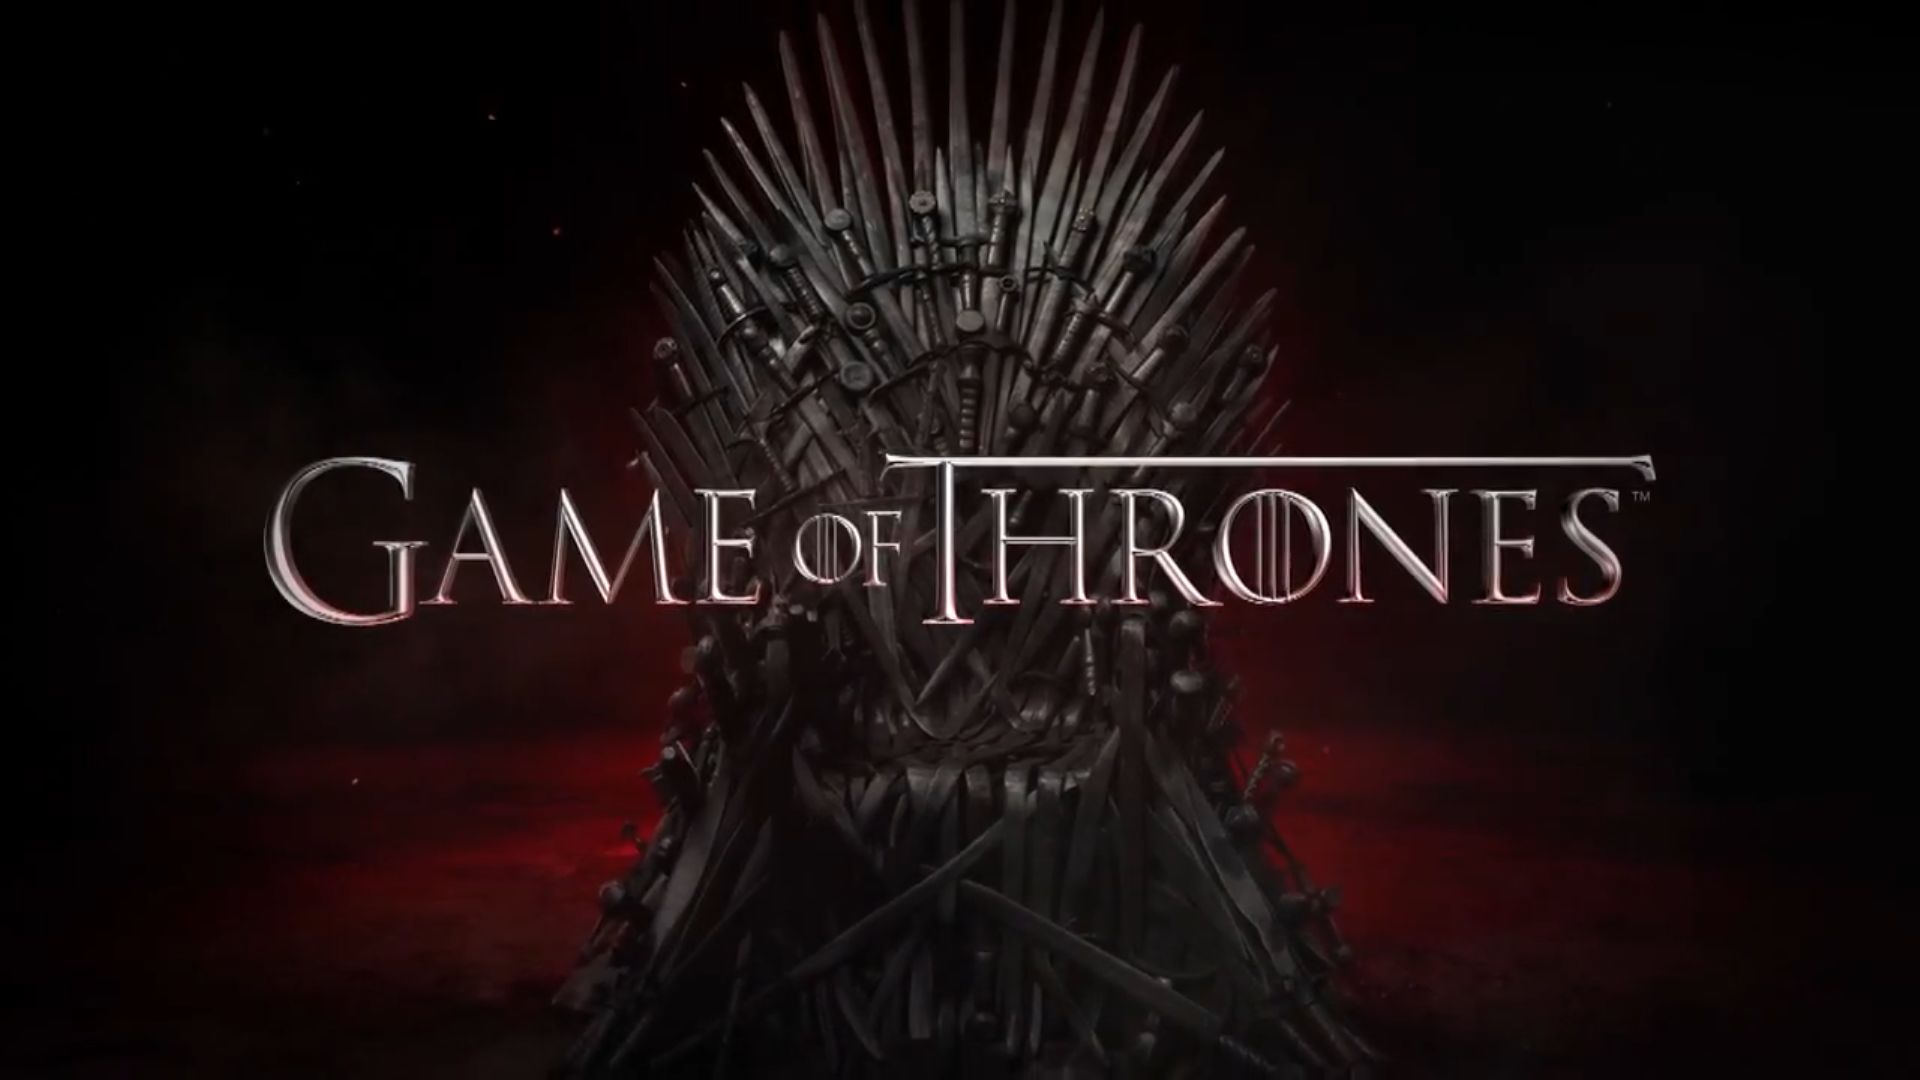 HBO Game of Thrones Wallpaper 1920x1080